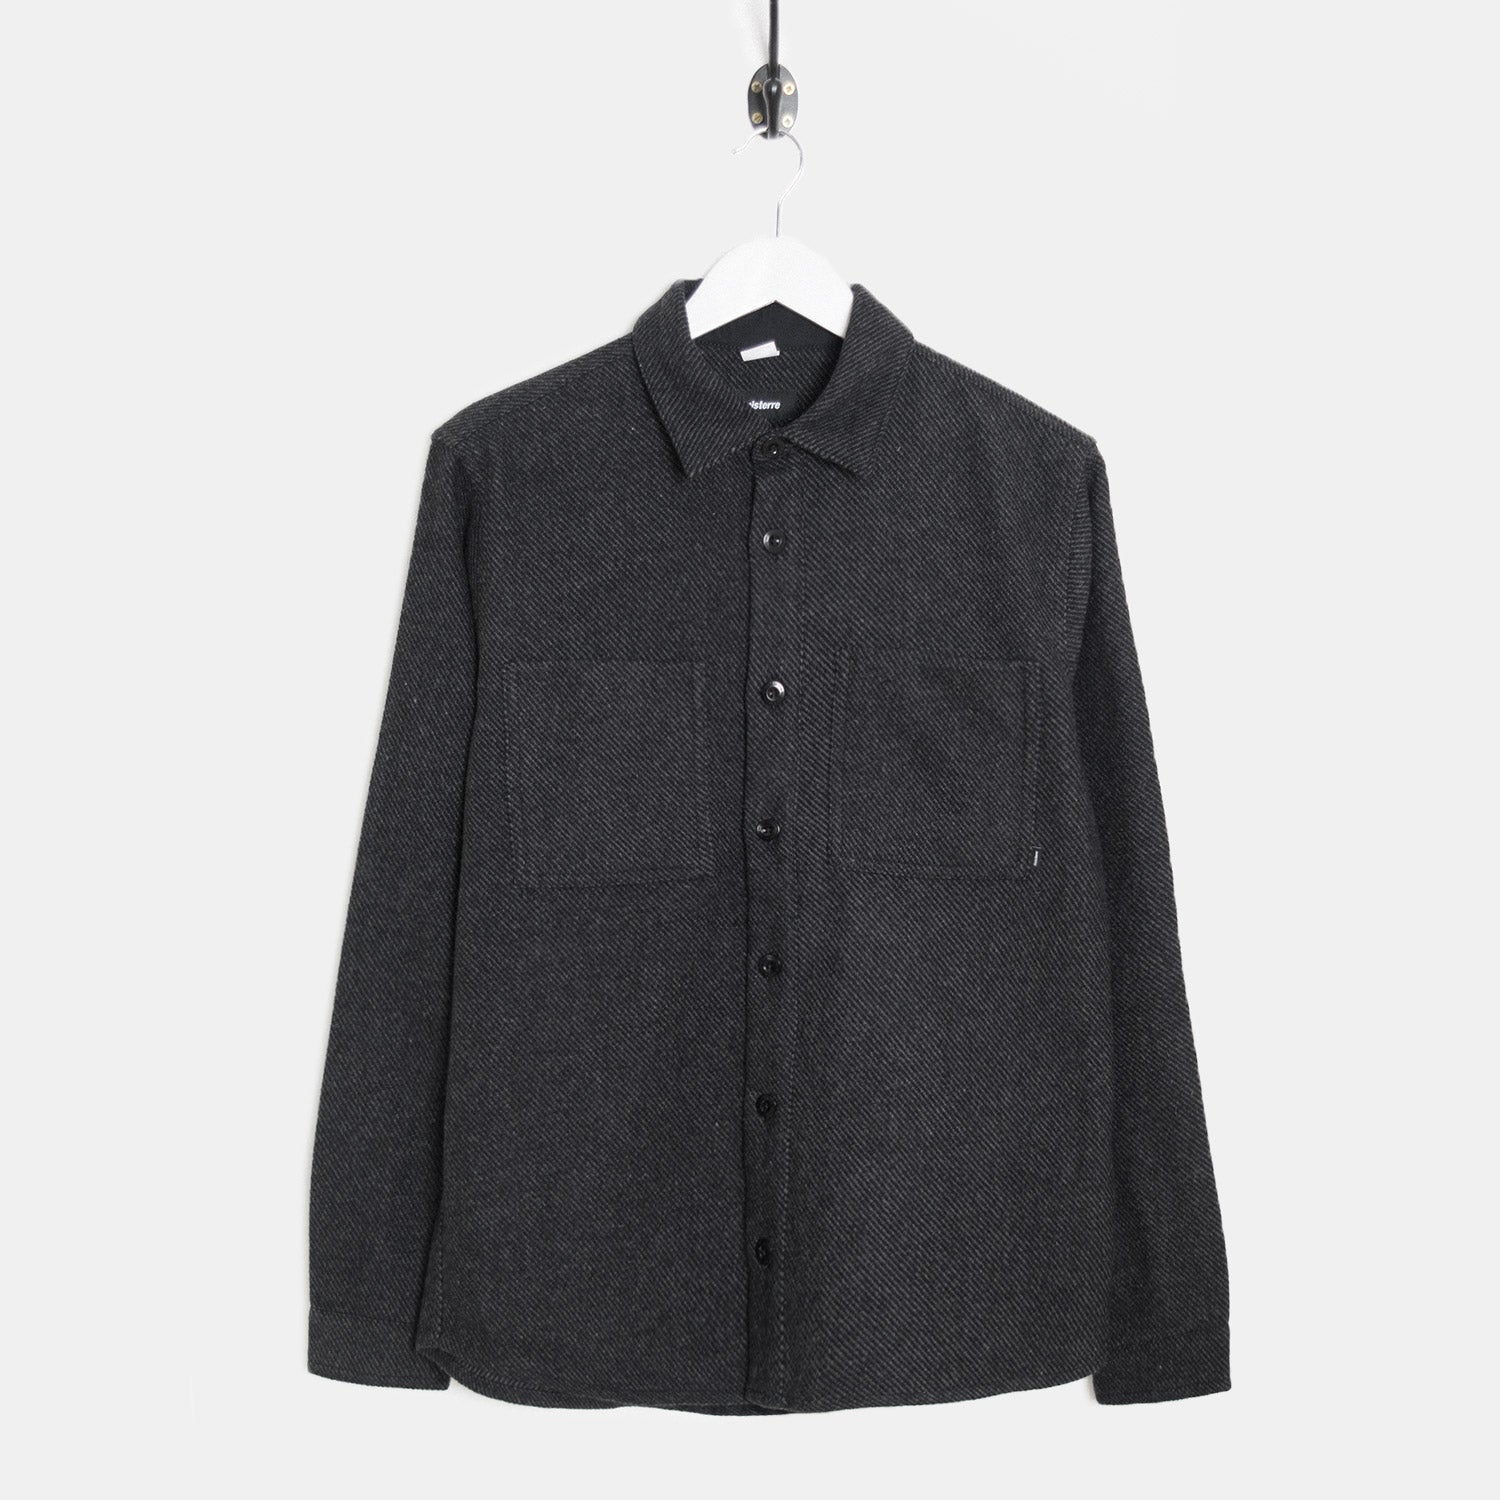 Finisterre Orbis Shirt - Charcoal